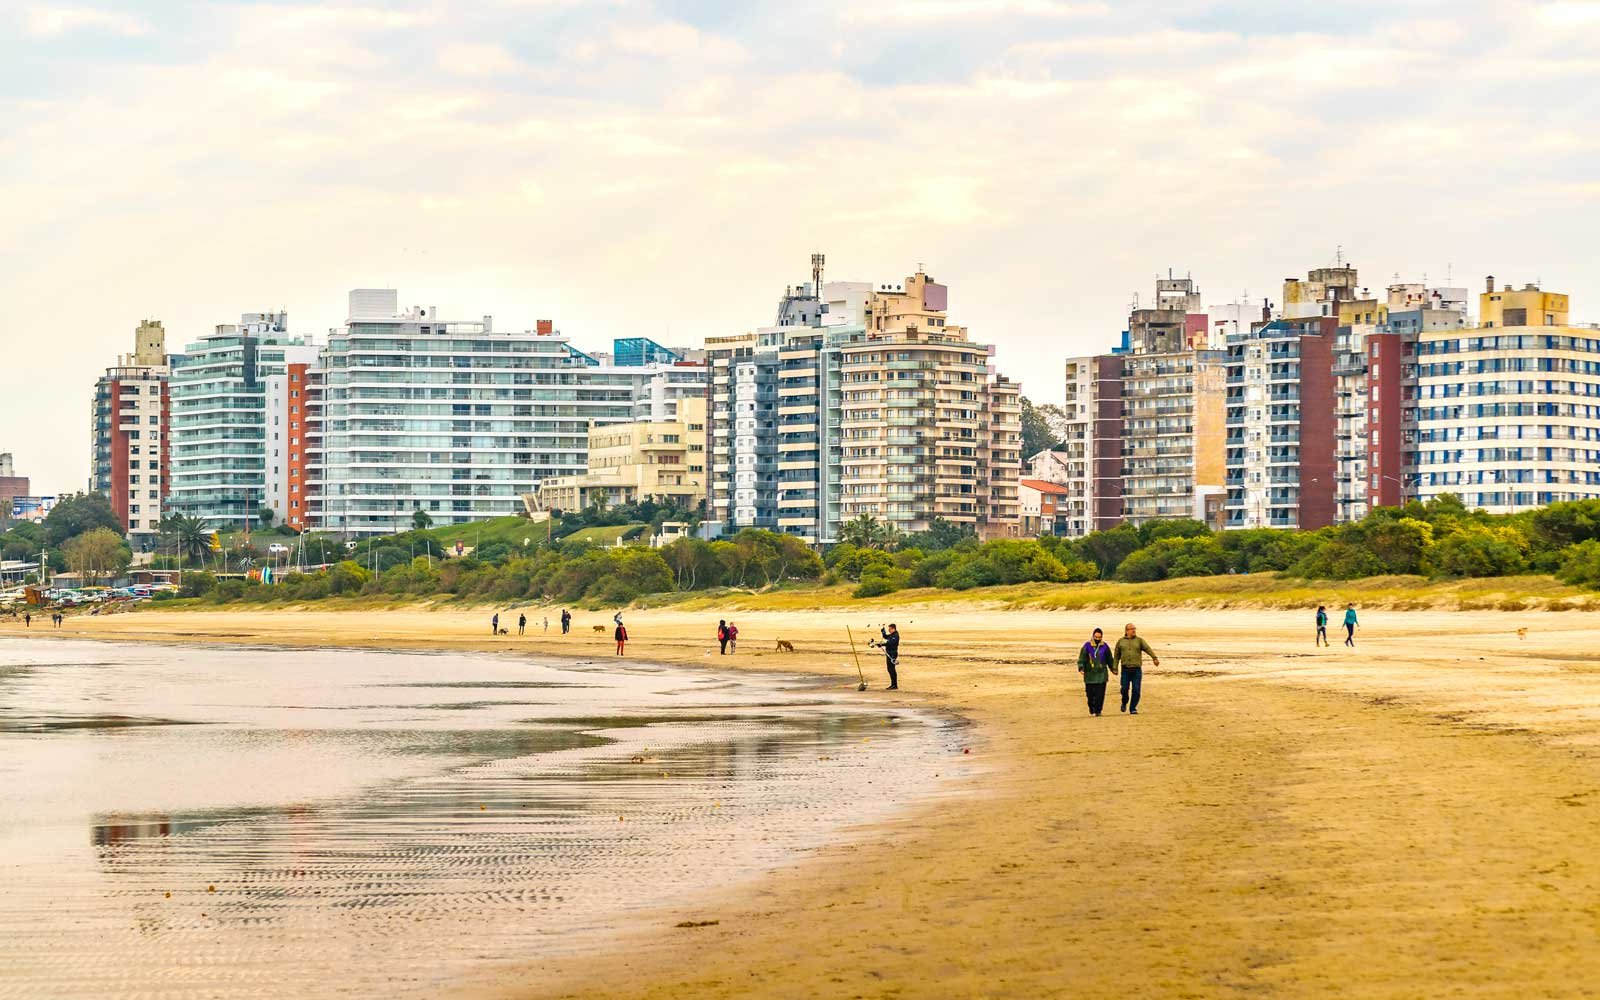 Urban day scene at malvin beach in the coast of Montevideo city, Uruguay